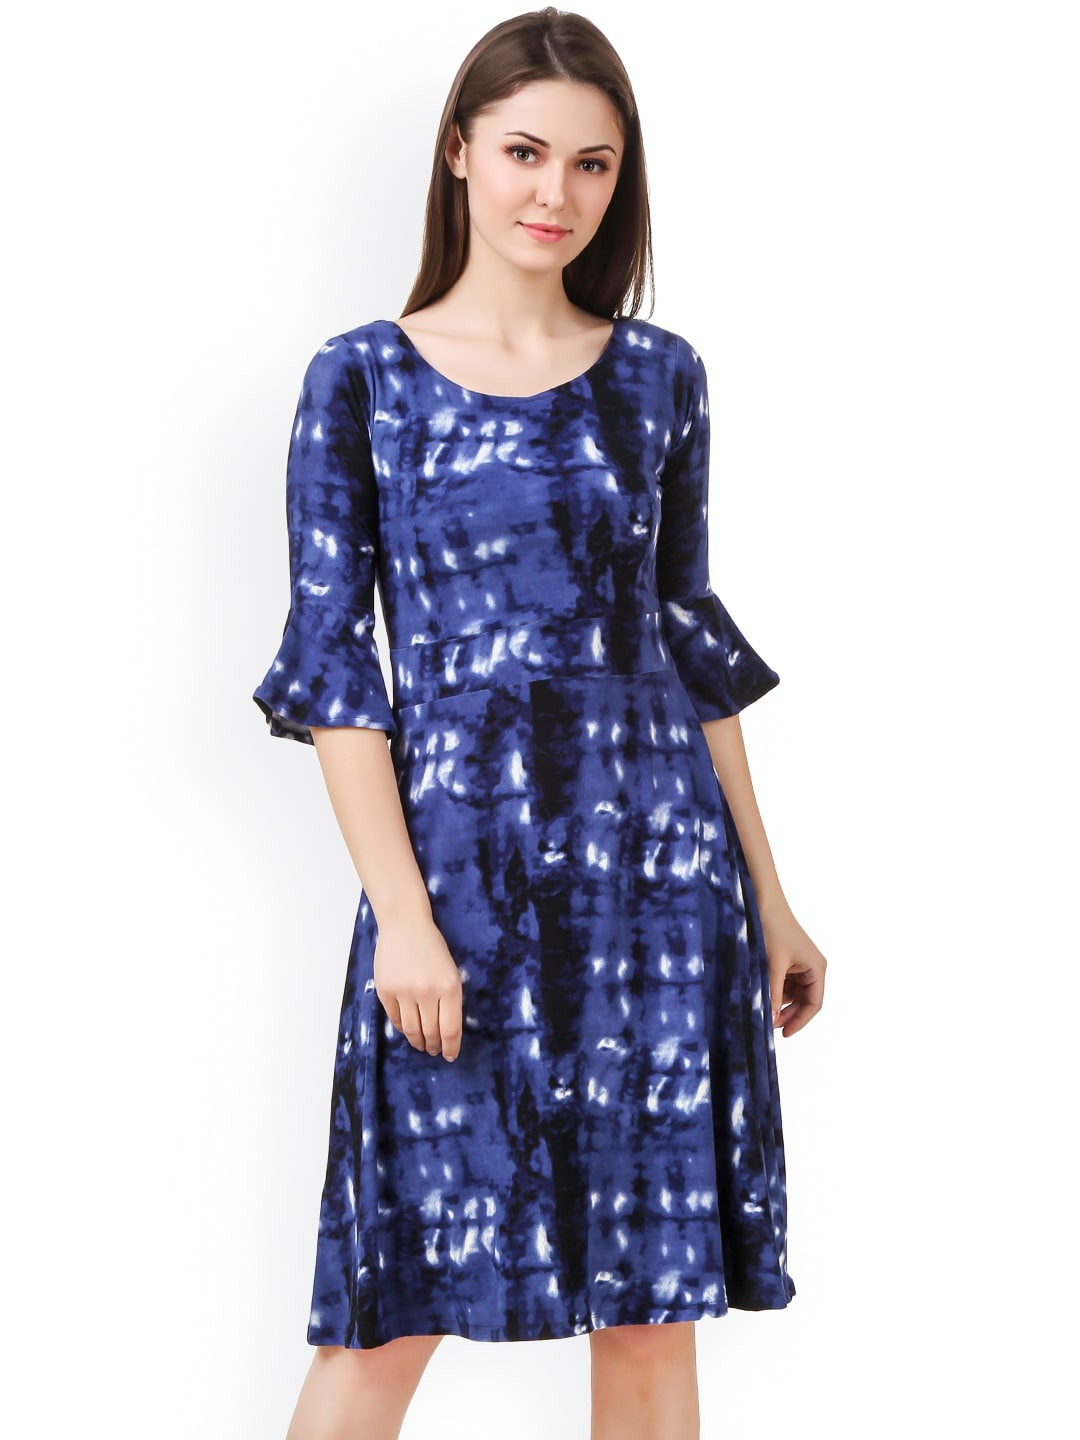 Purple Feather Women Blue Tie-Dyed A-Line Dress image